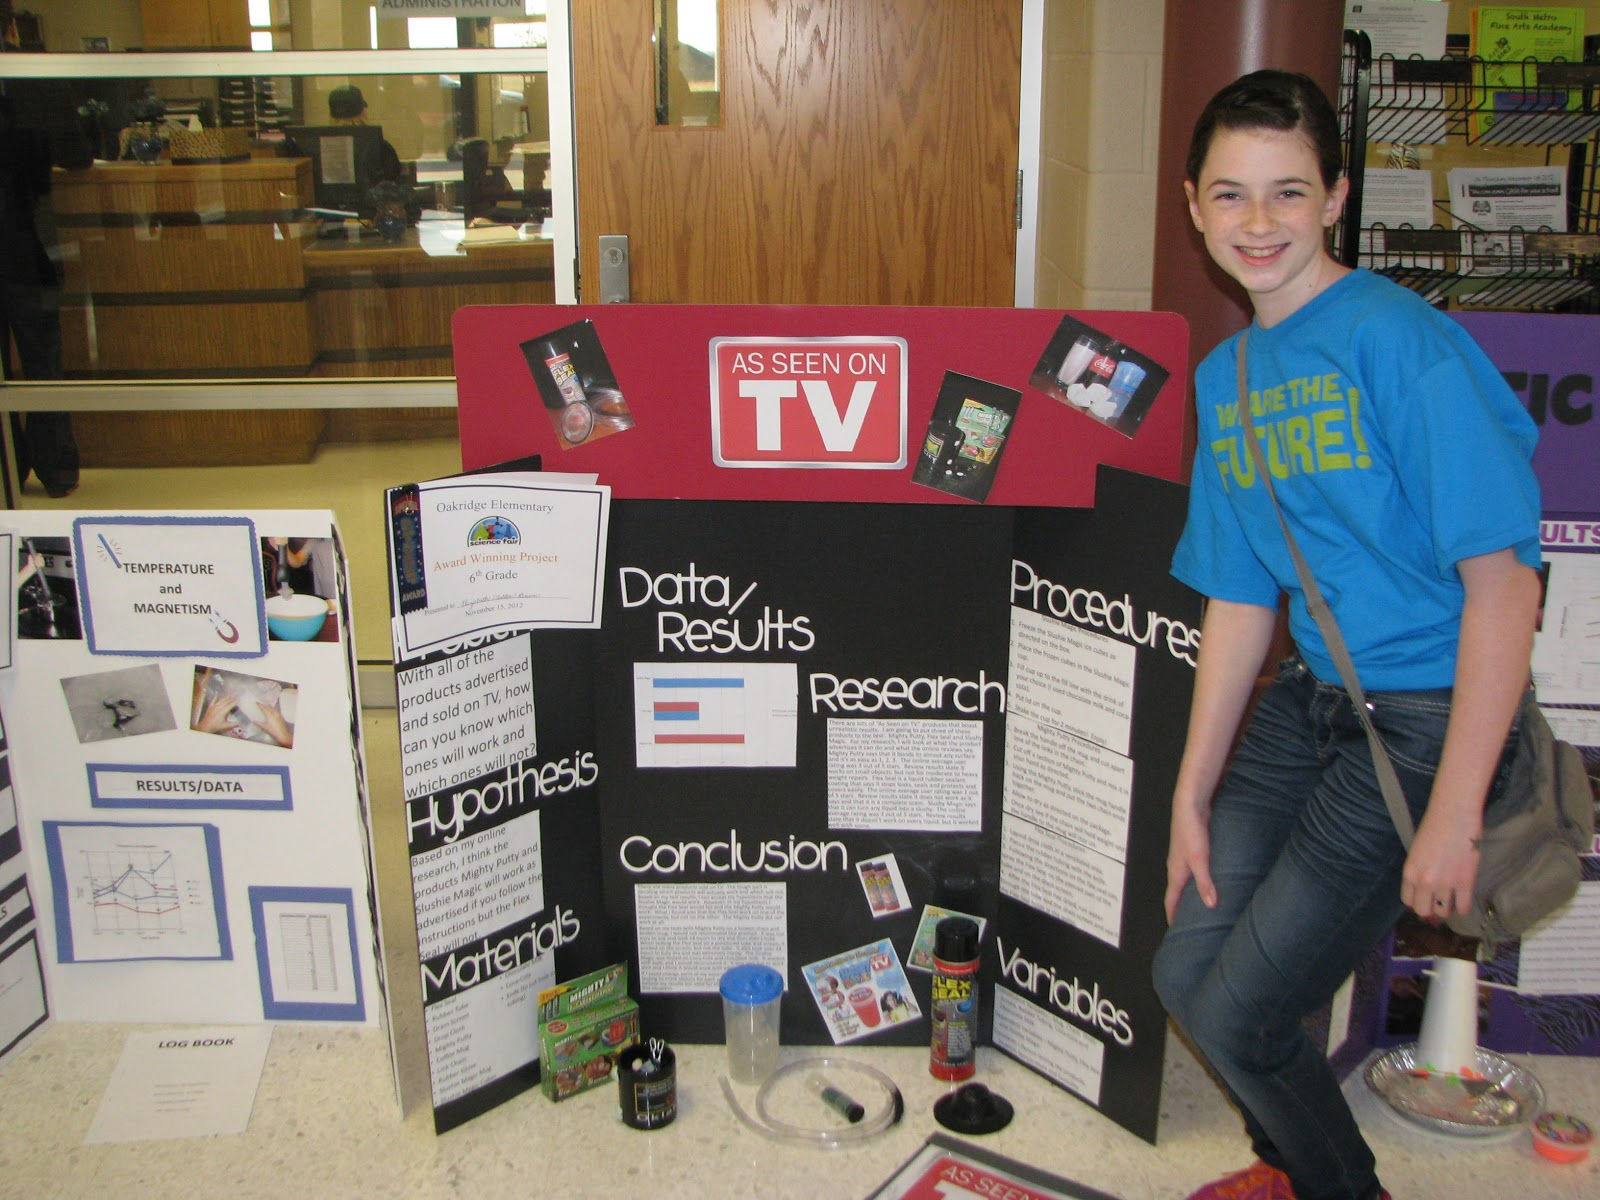 7 grade science fair projects Simple and easy 7th grade project ideas for your science fair seventh graders need to experiment with interesting science projects and reach some concrete conclusions the article below enlists some easy grade science fair project ideas  cleaning-coins-science-fair-projects-6th-7th-8th-grade see more.